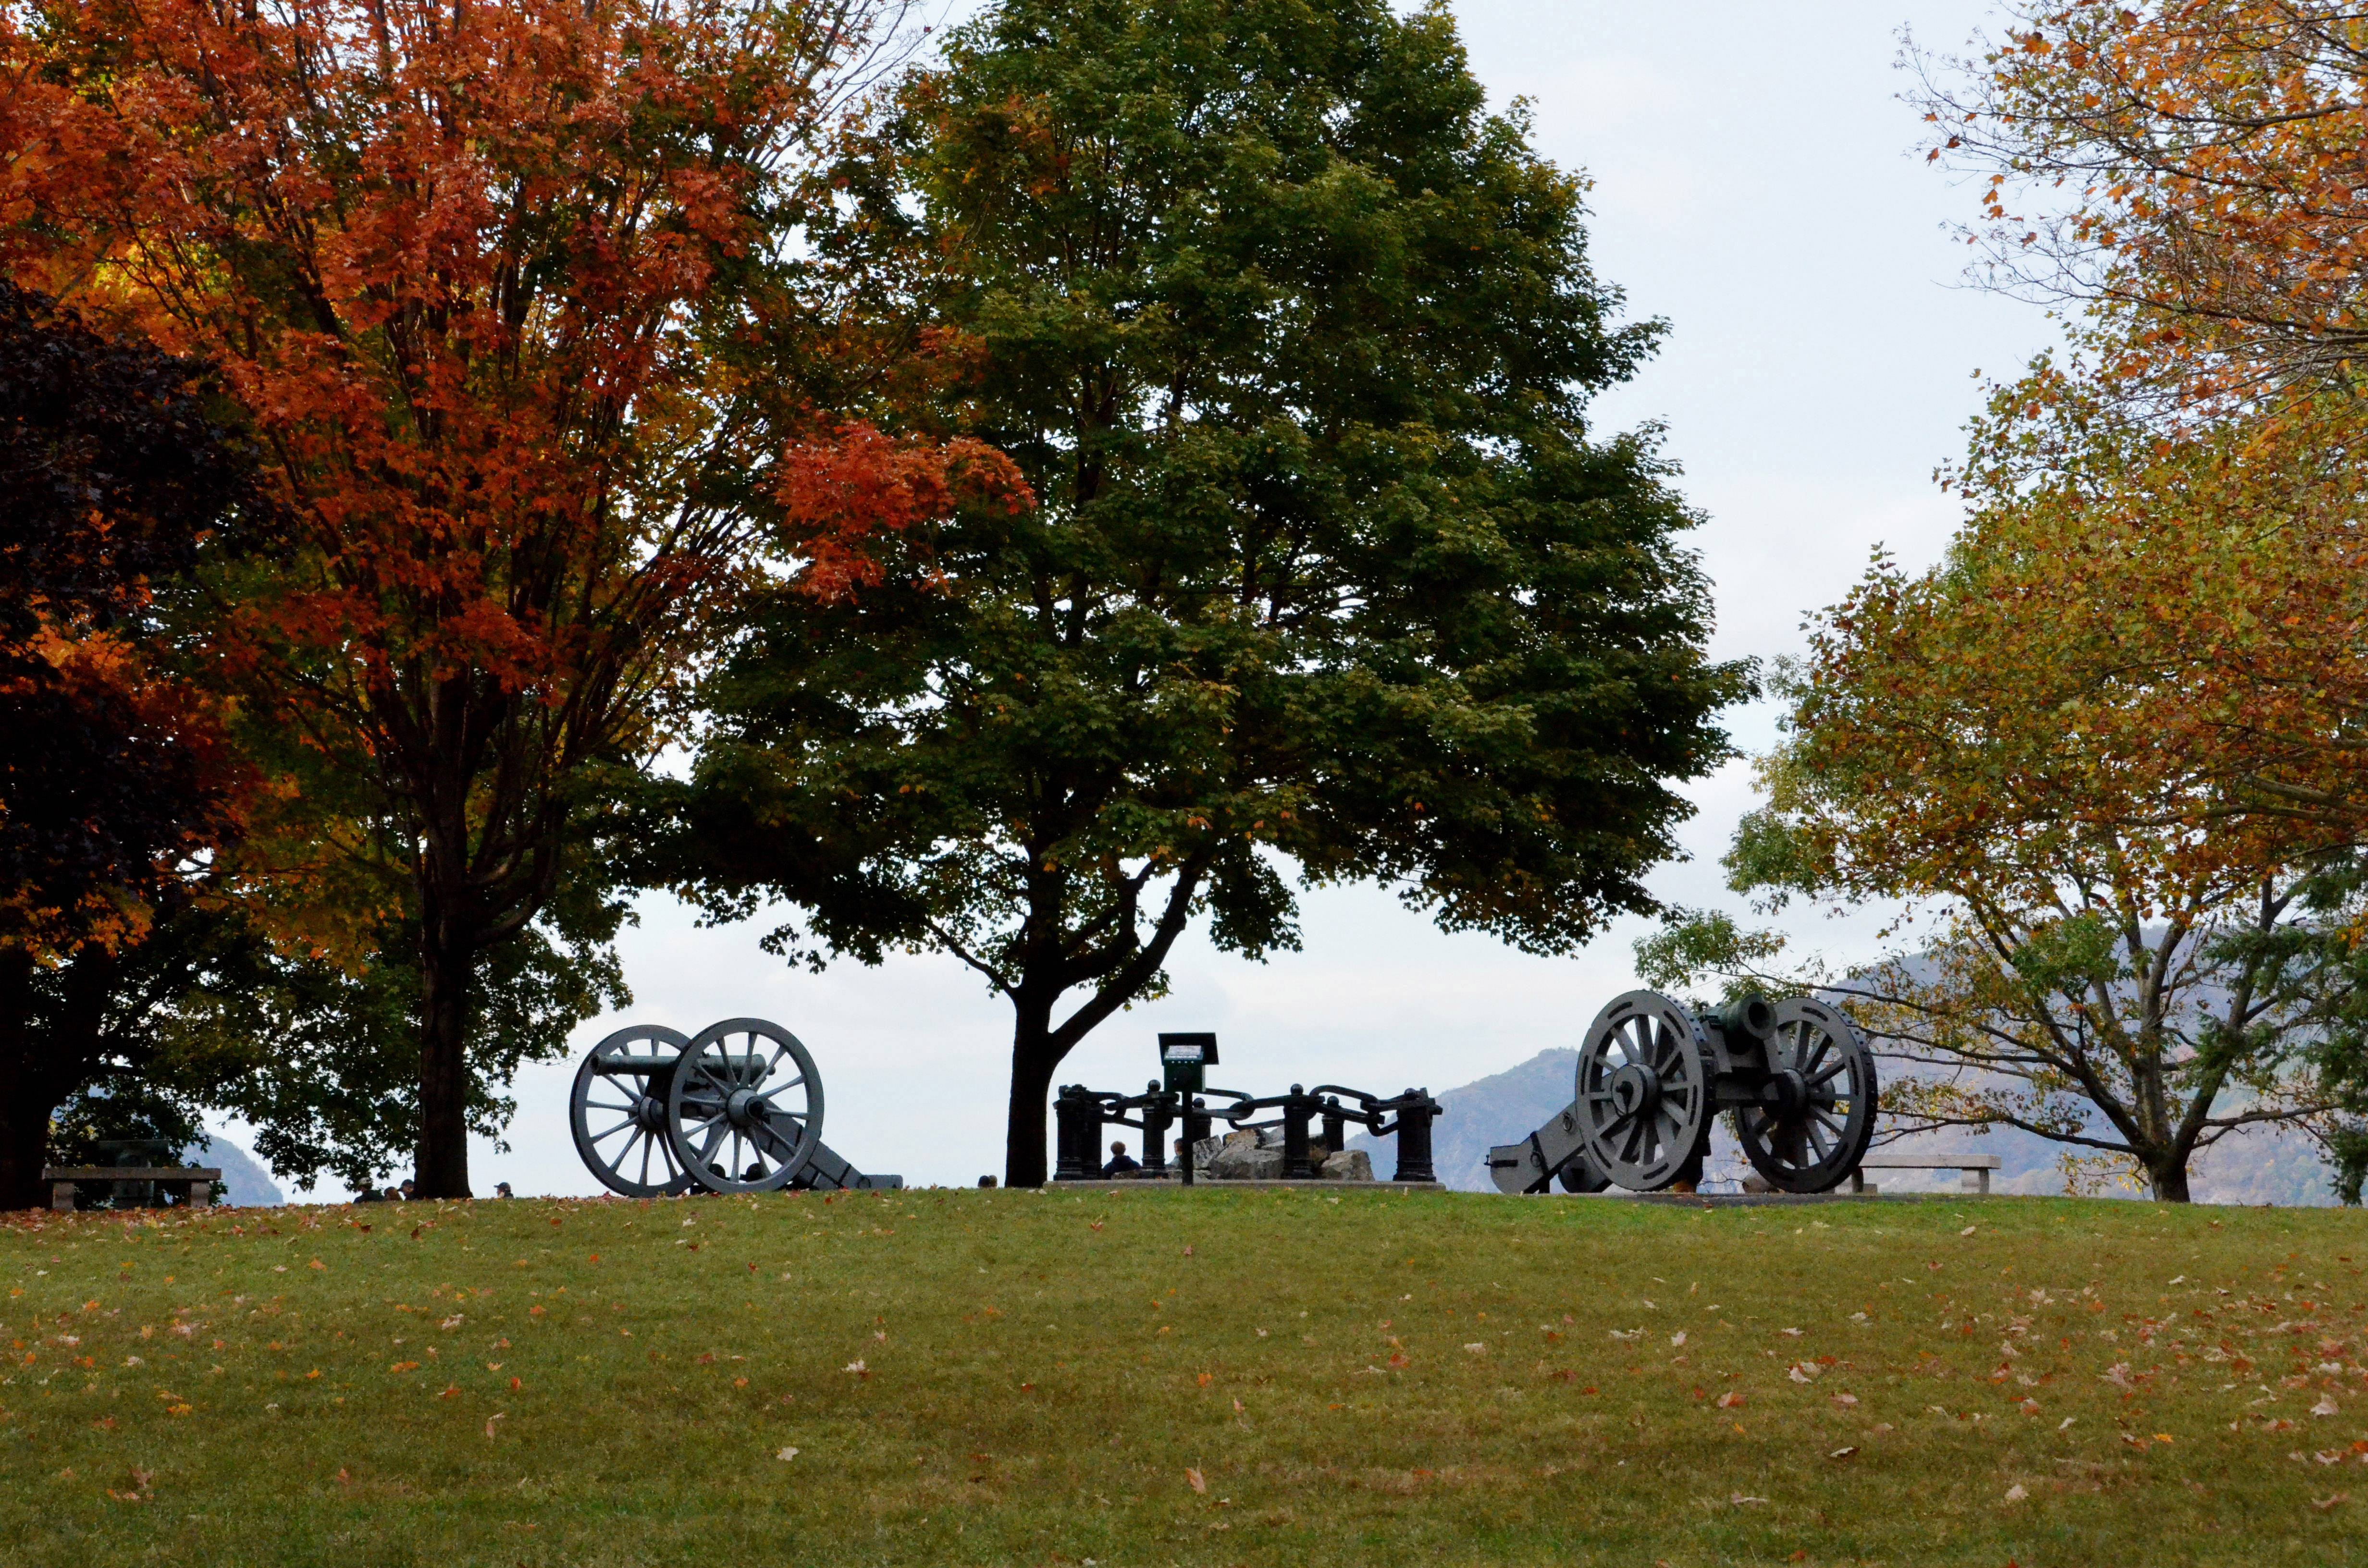 Two cannons, one on each side of the Great West Point Chain, overlooking the Hudson River on October 11 at the United States Military Academy in West Point, NY.